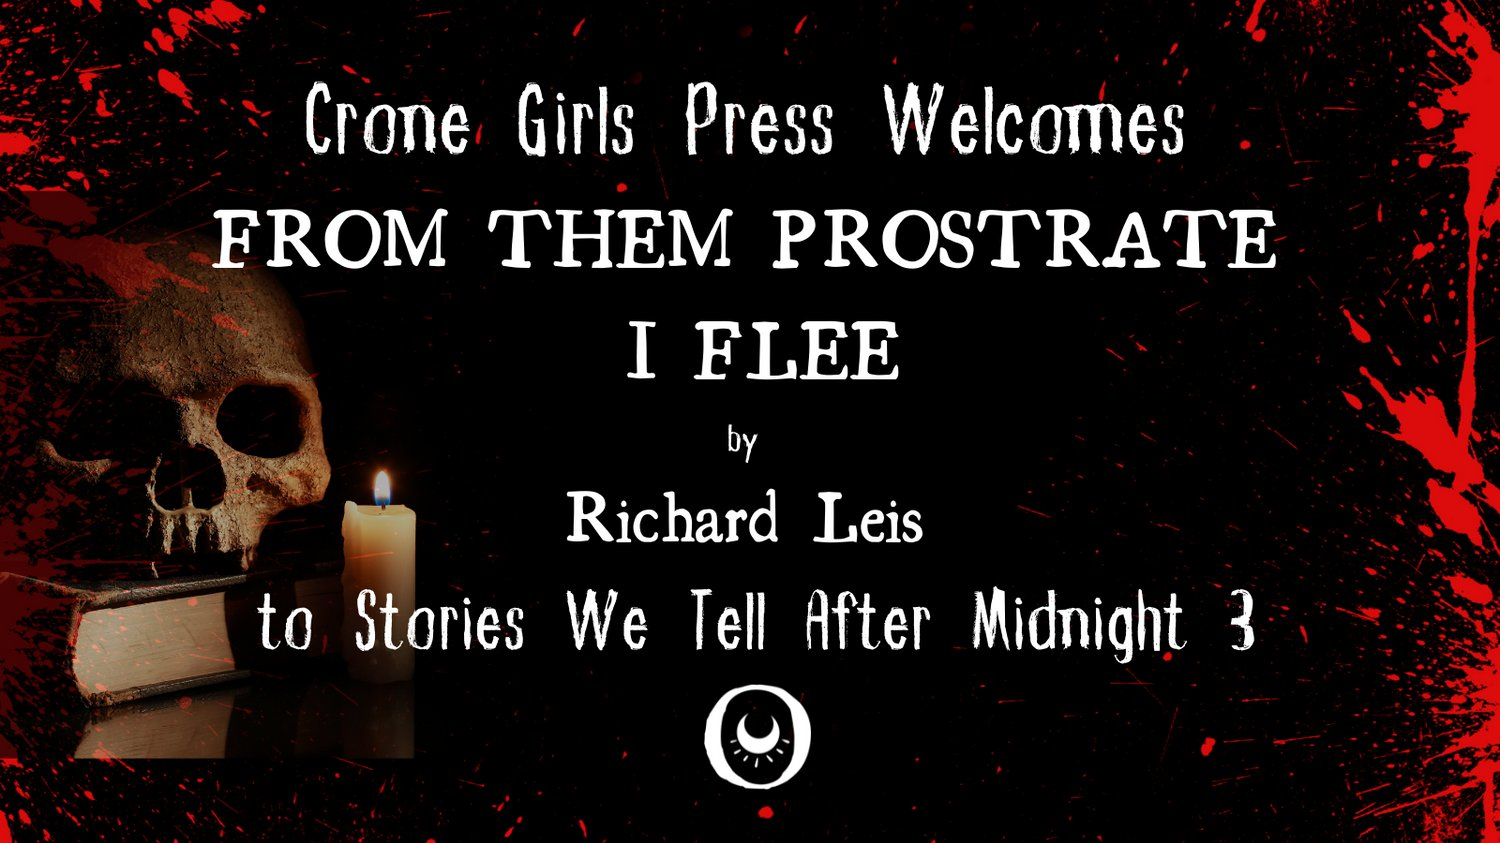 Crone Girls Press Stories We Tell After Midnight 3 announcement, with a skull on a pile of books and a candle in the background, red specks like blood, and text in white: Crone Girls Press Welcomes FROM THEM PROSTRATE I FLEE by Richard Leis to Stories We Tell After Midnight 3